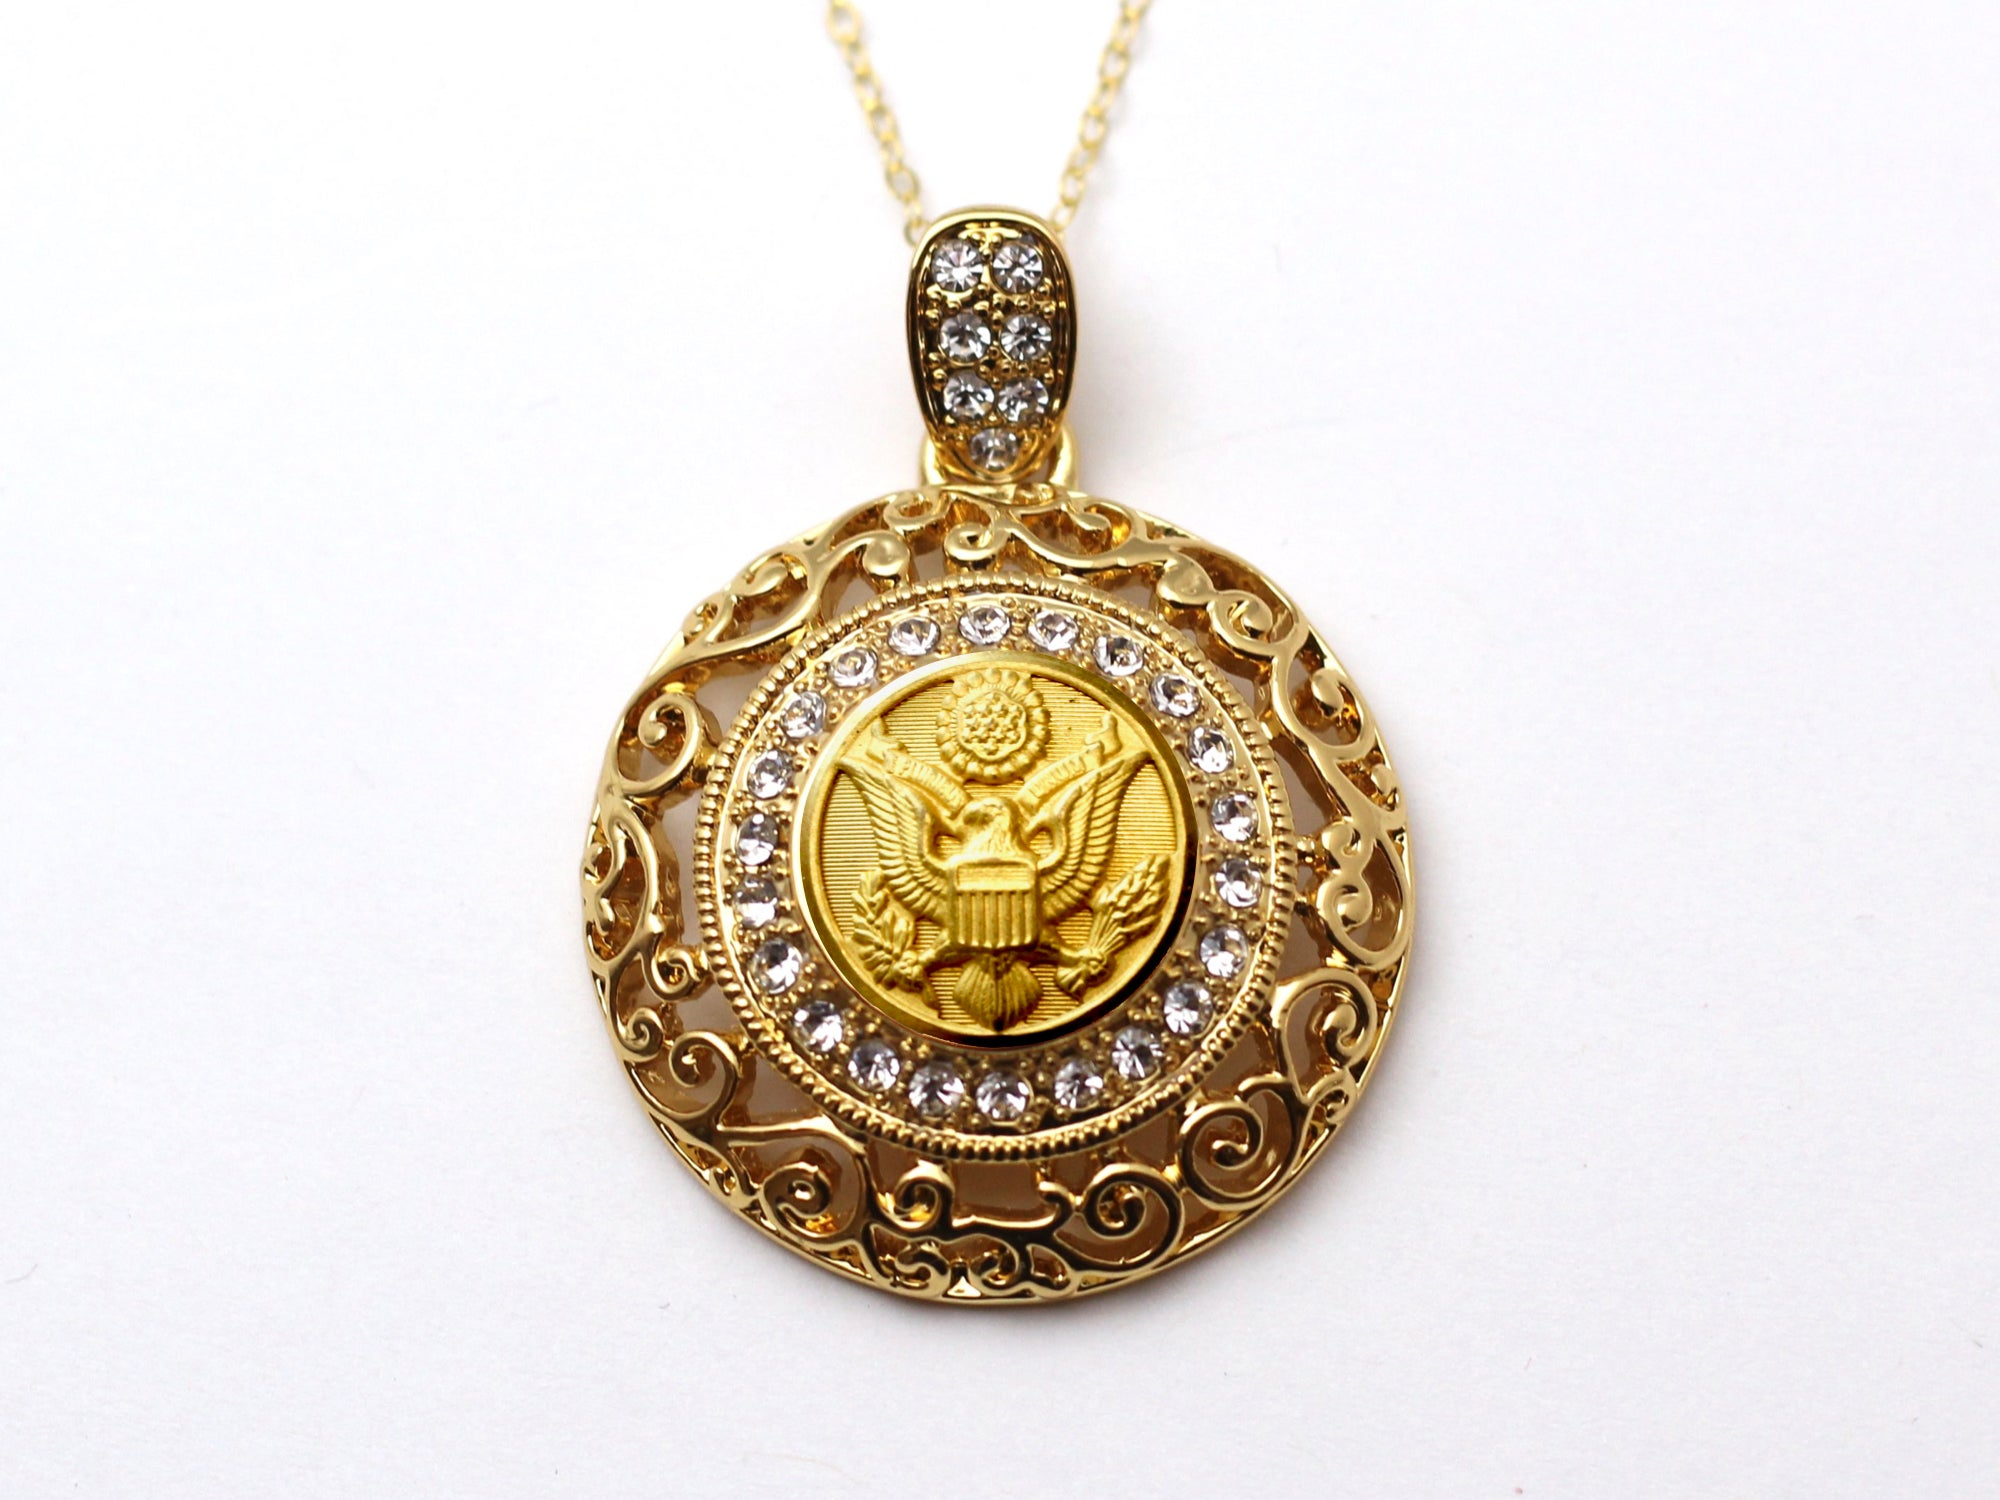 Army Button Necklace - Large Gold Rhinestone Pendant